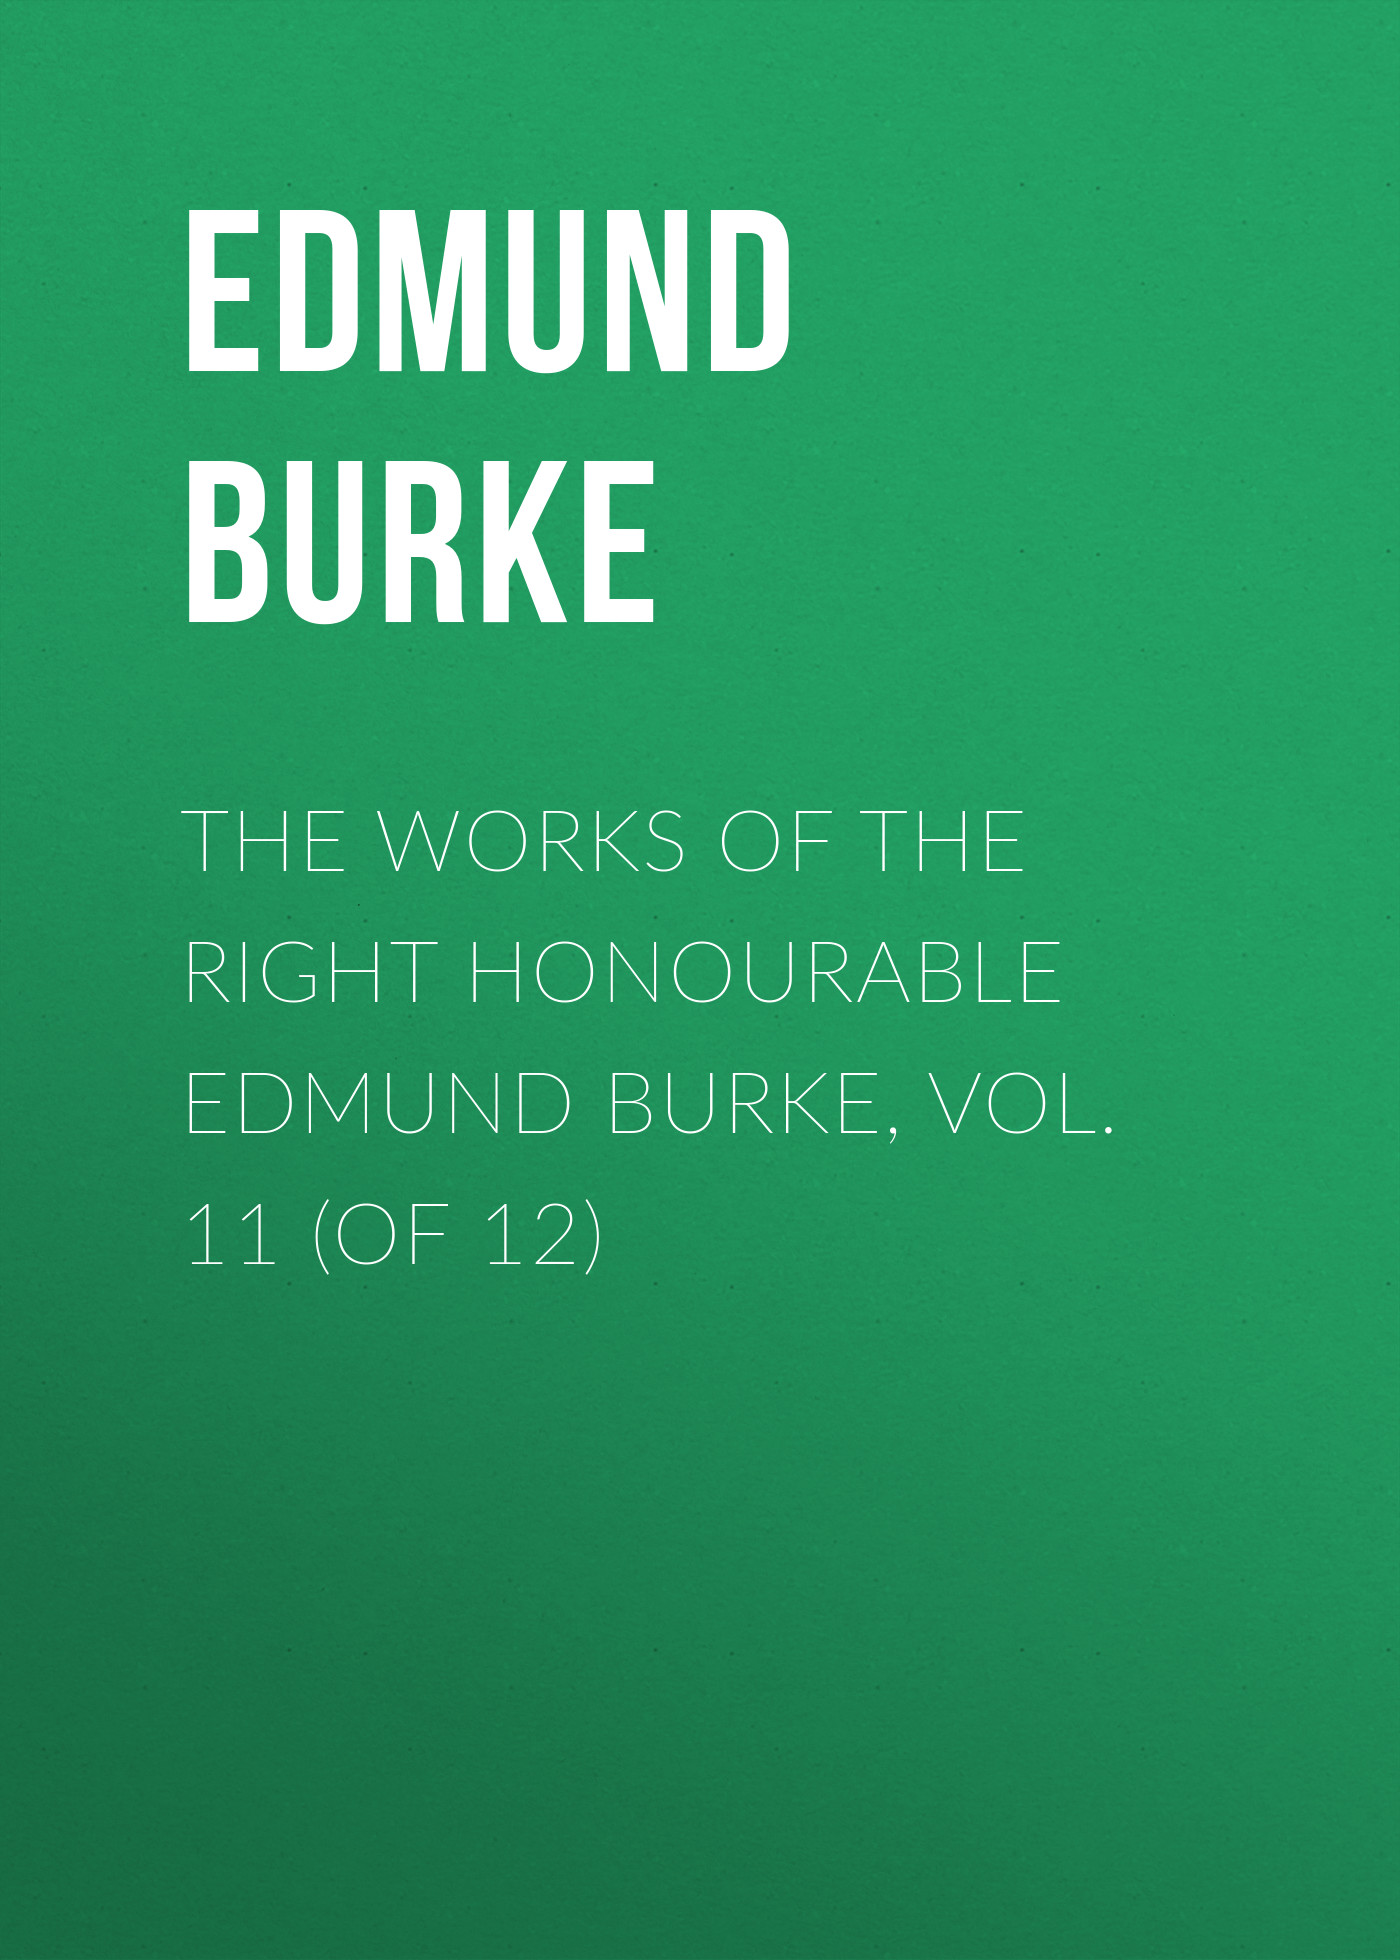 Edmund Burke The Works of the Right Honourable Edmund Burke, Vol. 11 (of 12) burke edmund the speeches of the right honourable edmund burke on the impeachment of warren hastings